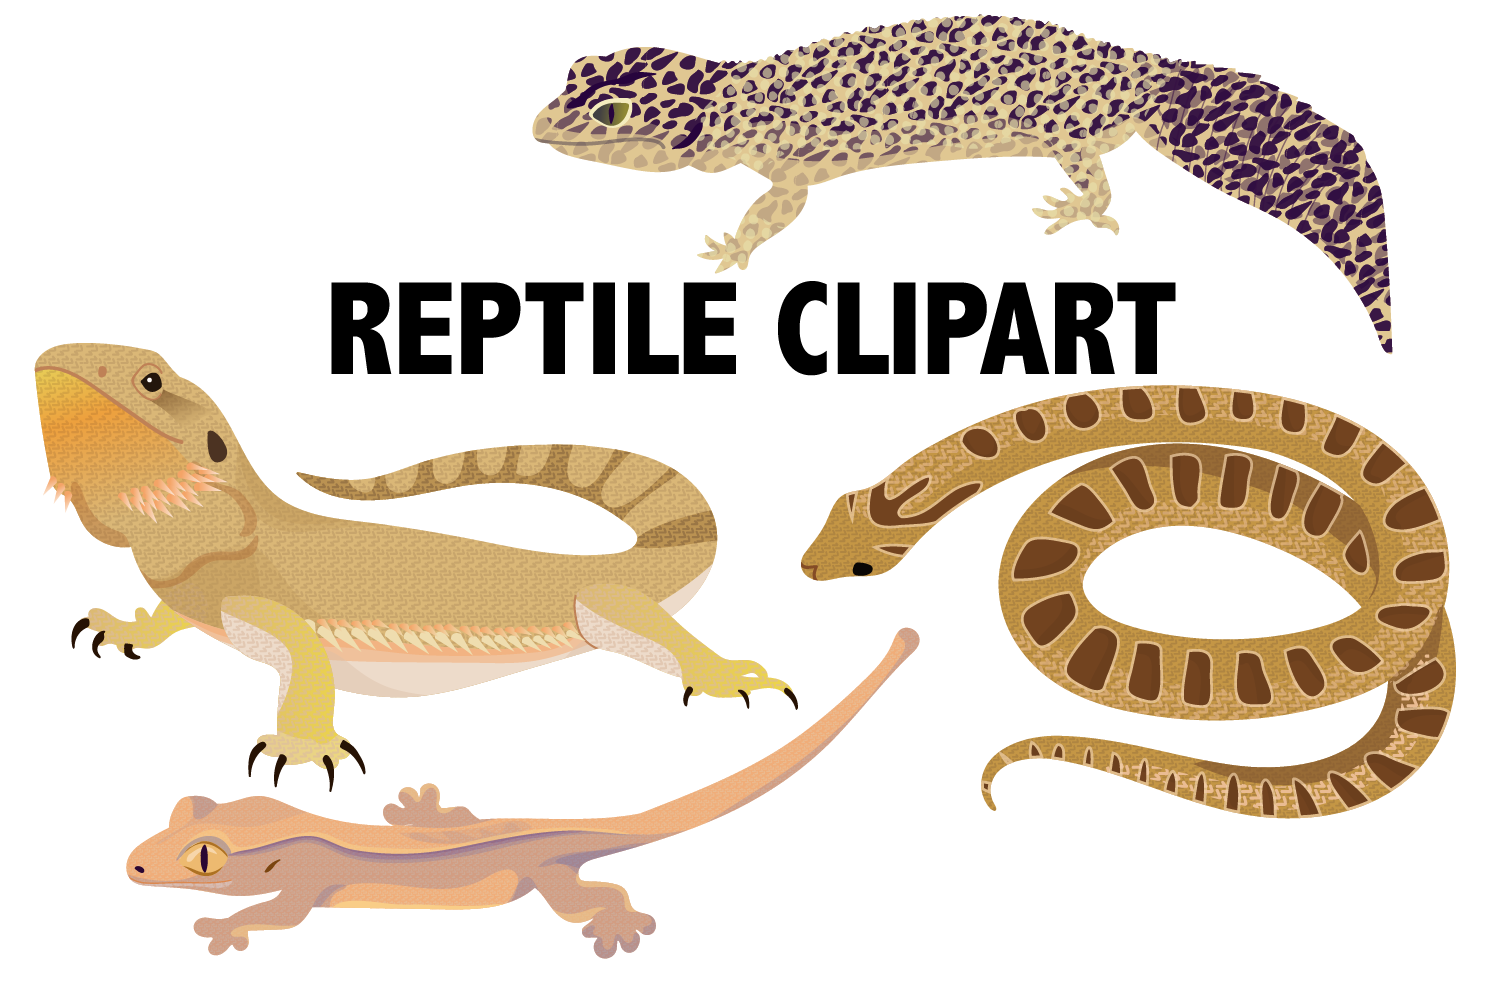 Reptile Clipart example image 1